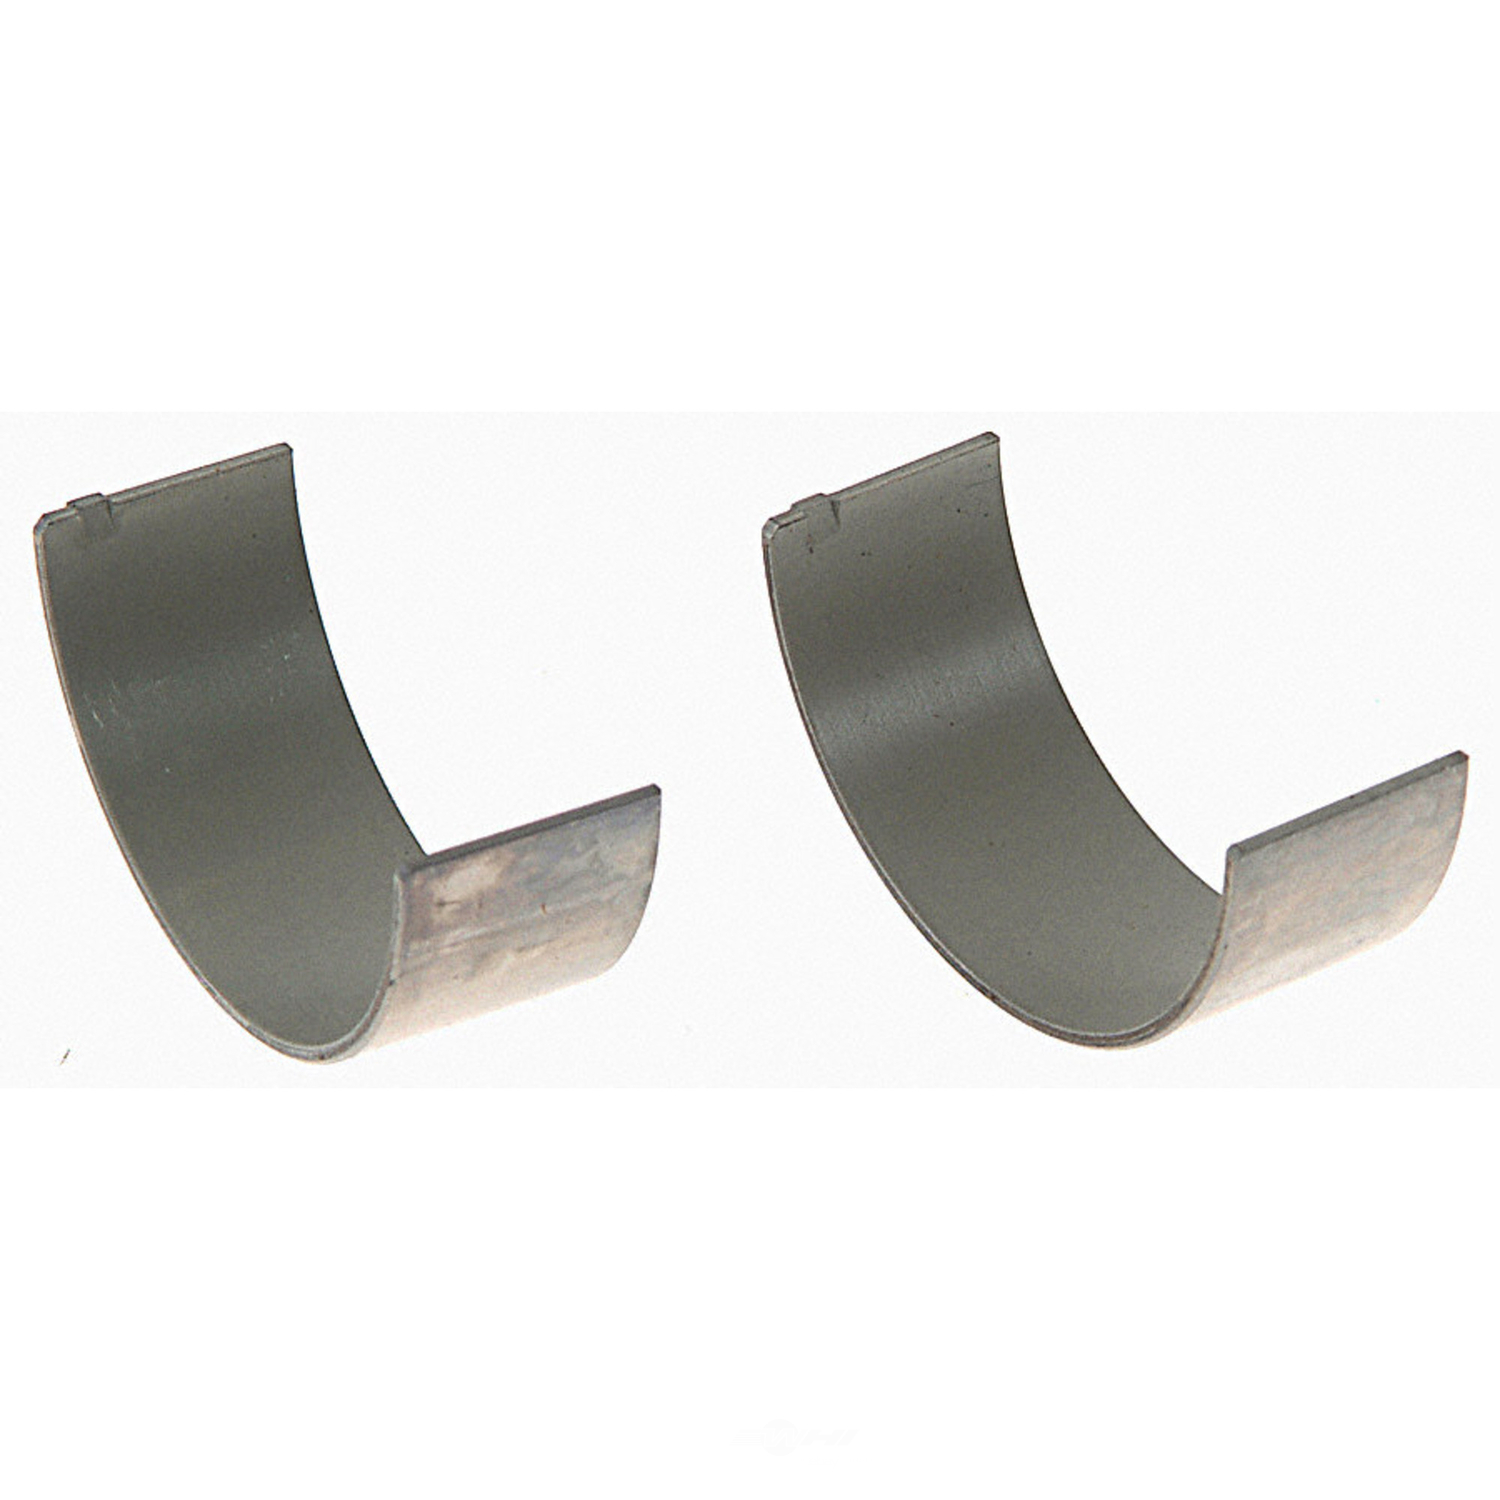 SEALED POWER - Engine Connecting Rod Bearing - SEA 2555CP 40